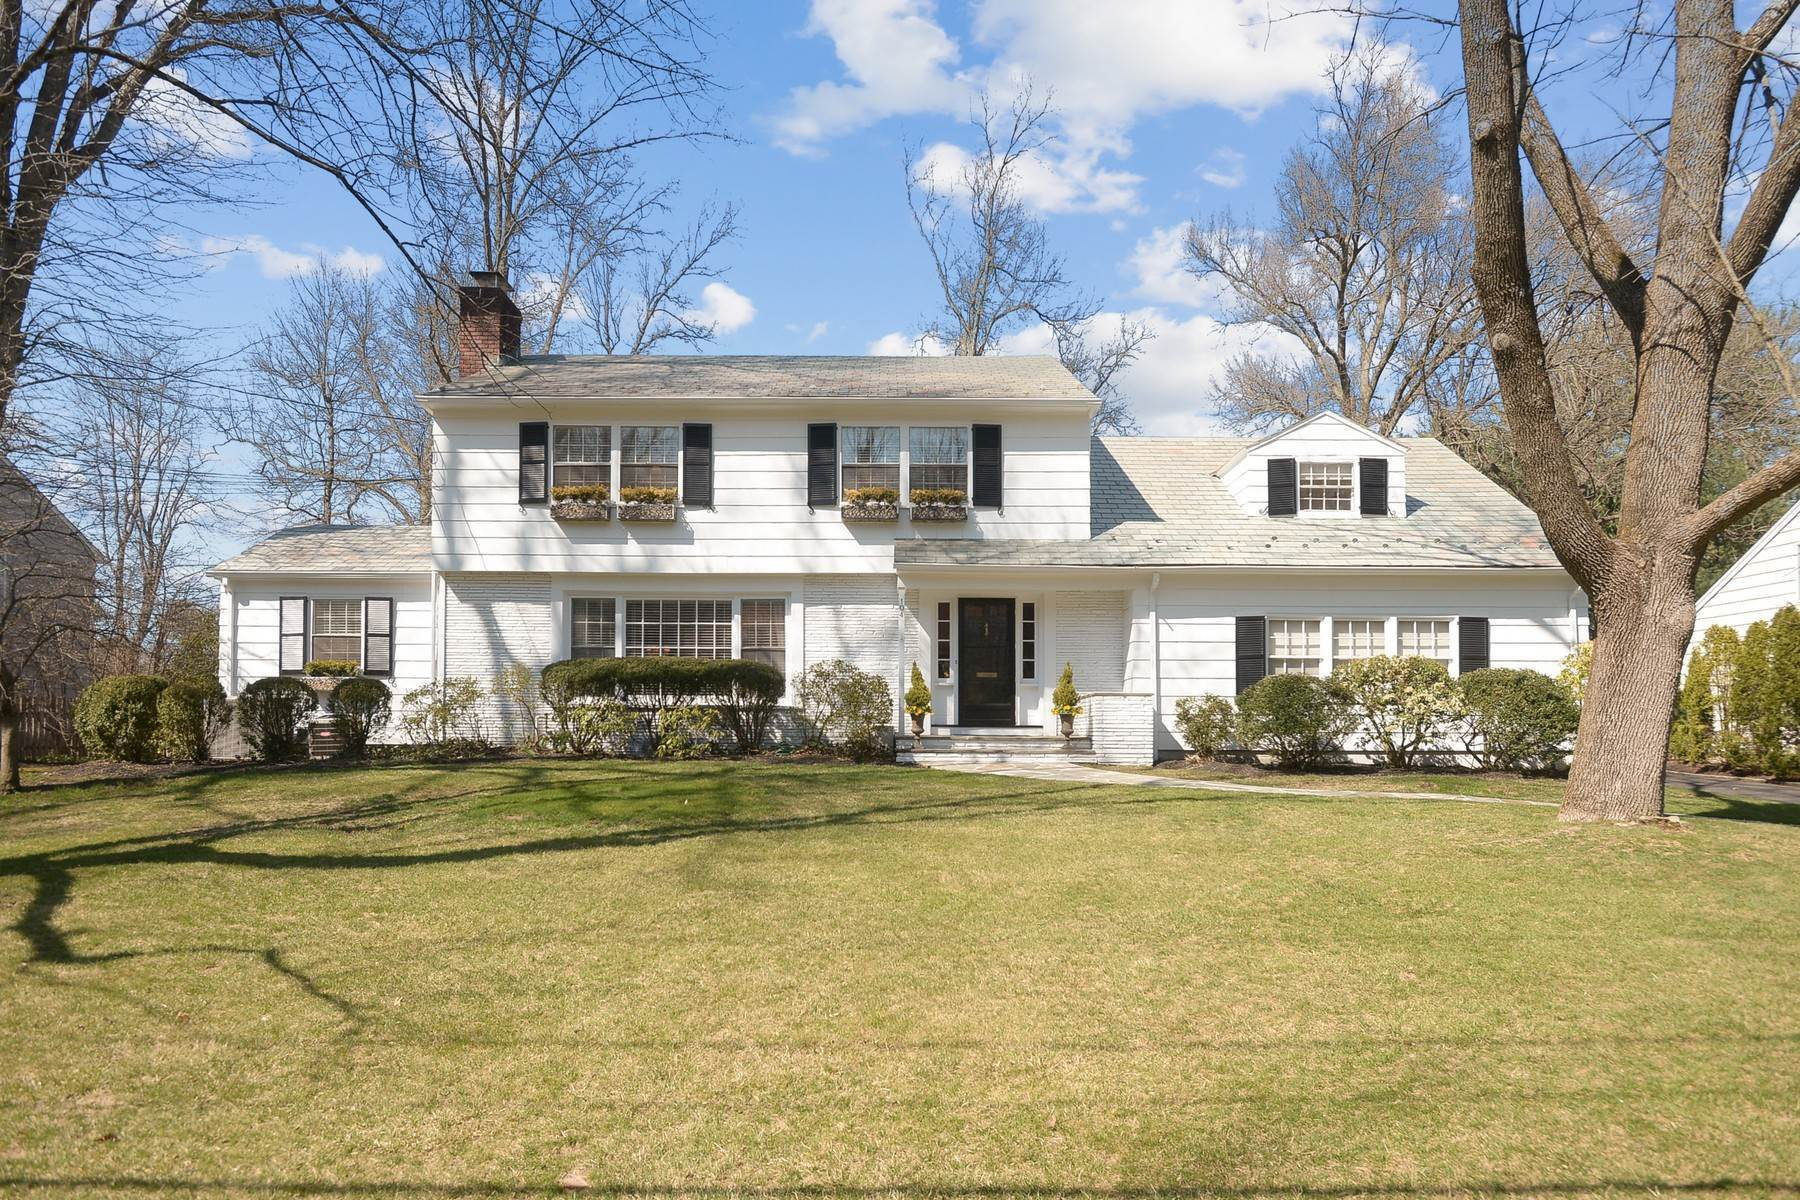 Single Family Homes for Sale at Beautifully Renovated Colonial 104 Portland Road Summit, New Jersey 07901 United States